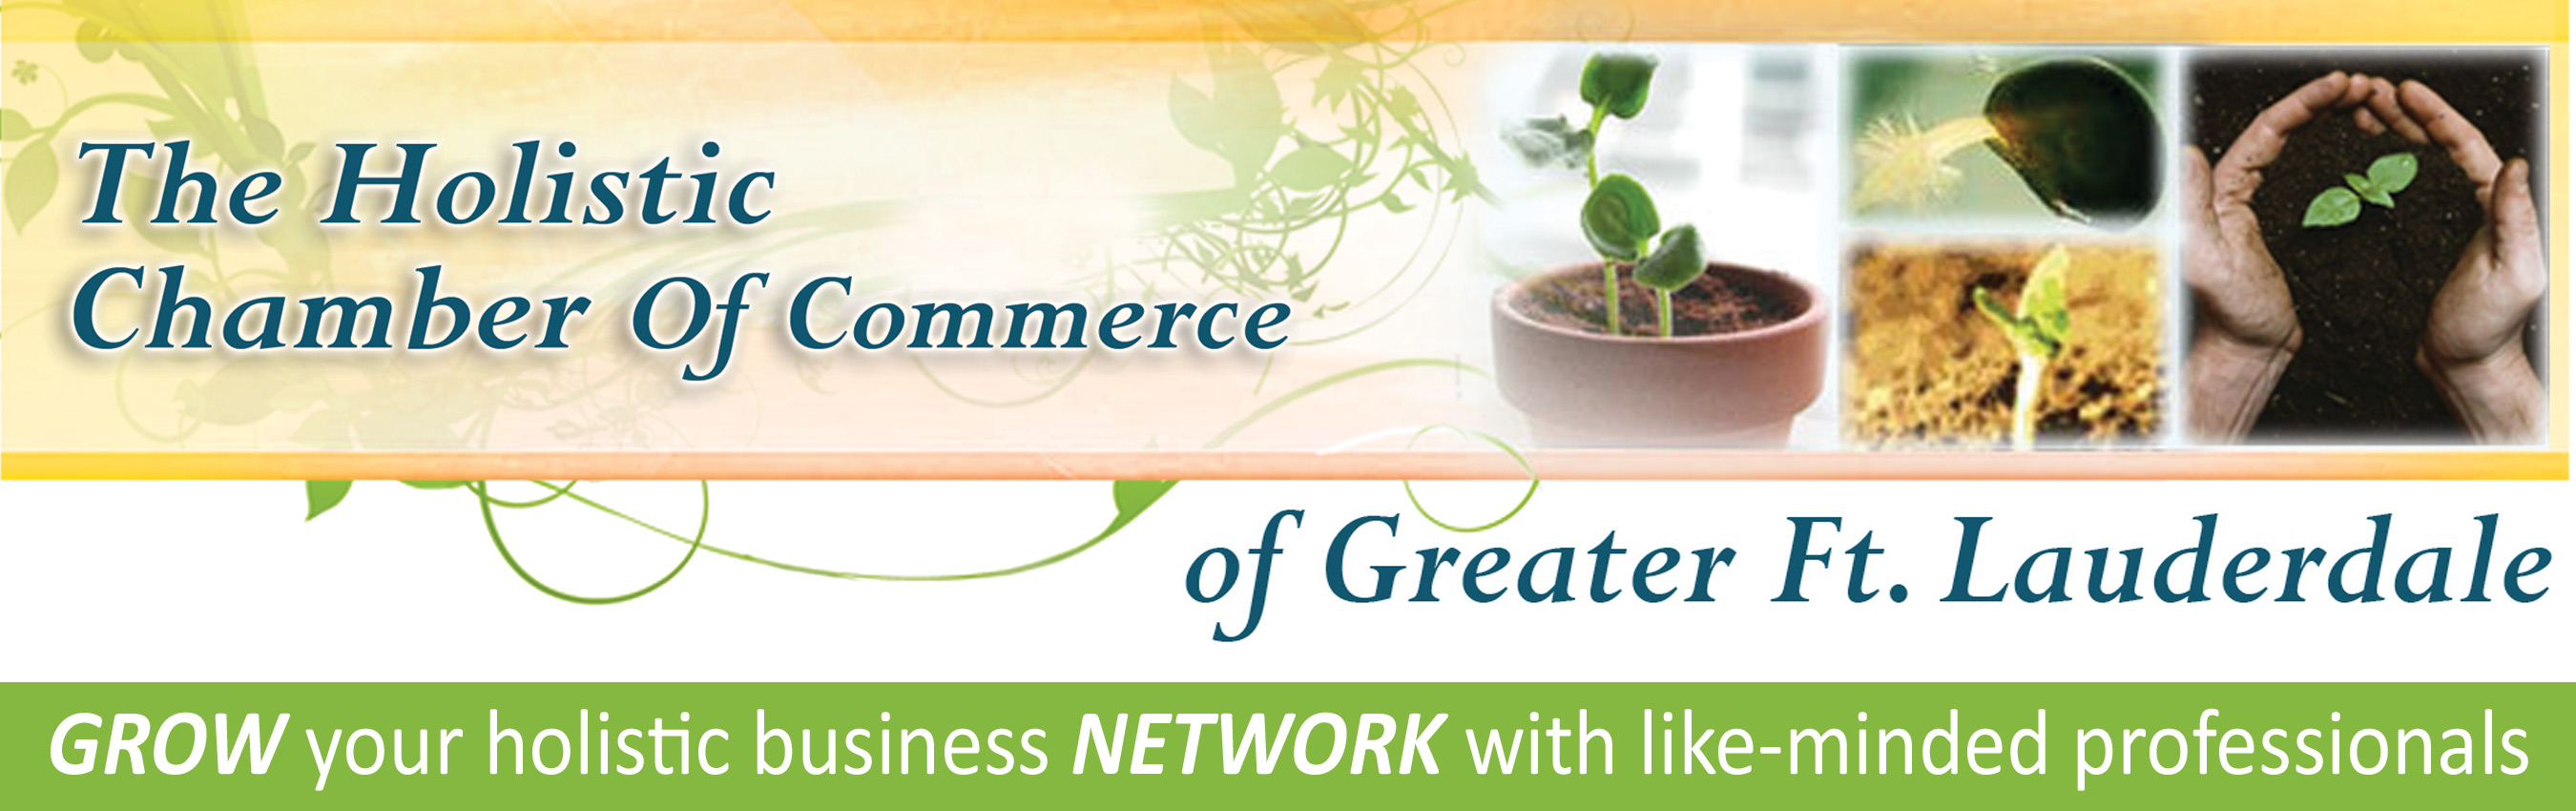 Holistic Chamber of Commerce of Greater Fort Lauderdale